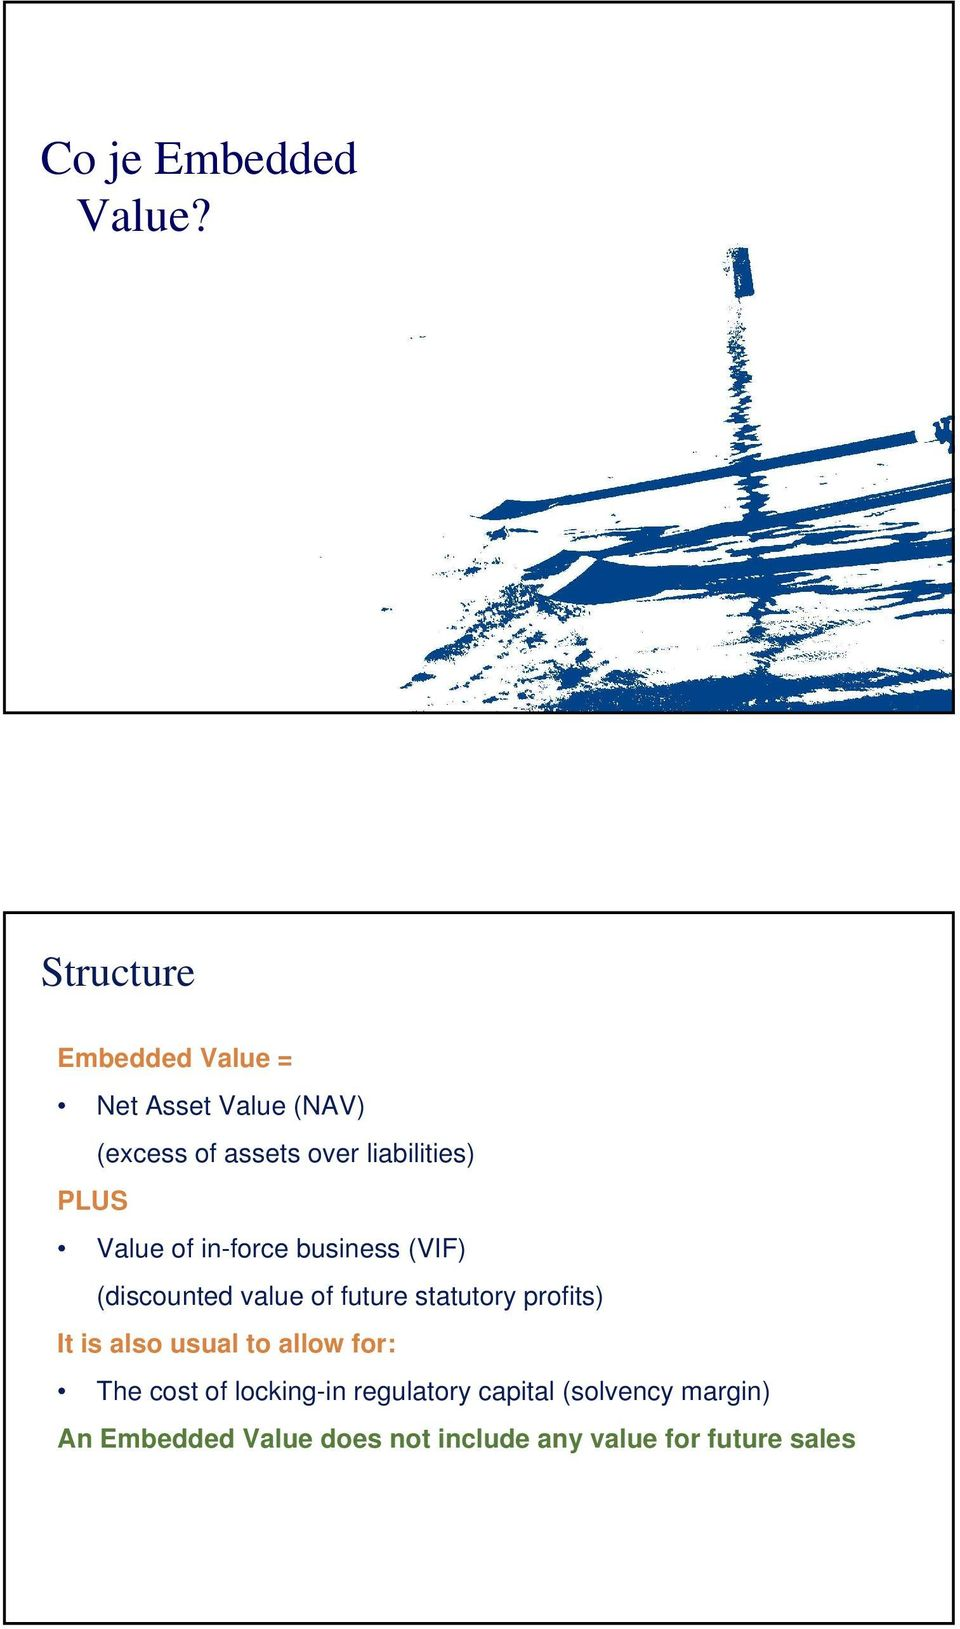 PLUS Value of in-force business (VIF) (discounted value of future statutory profits)